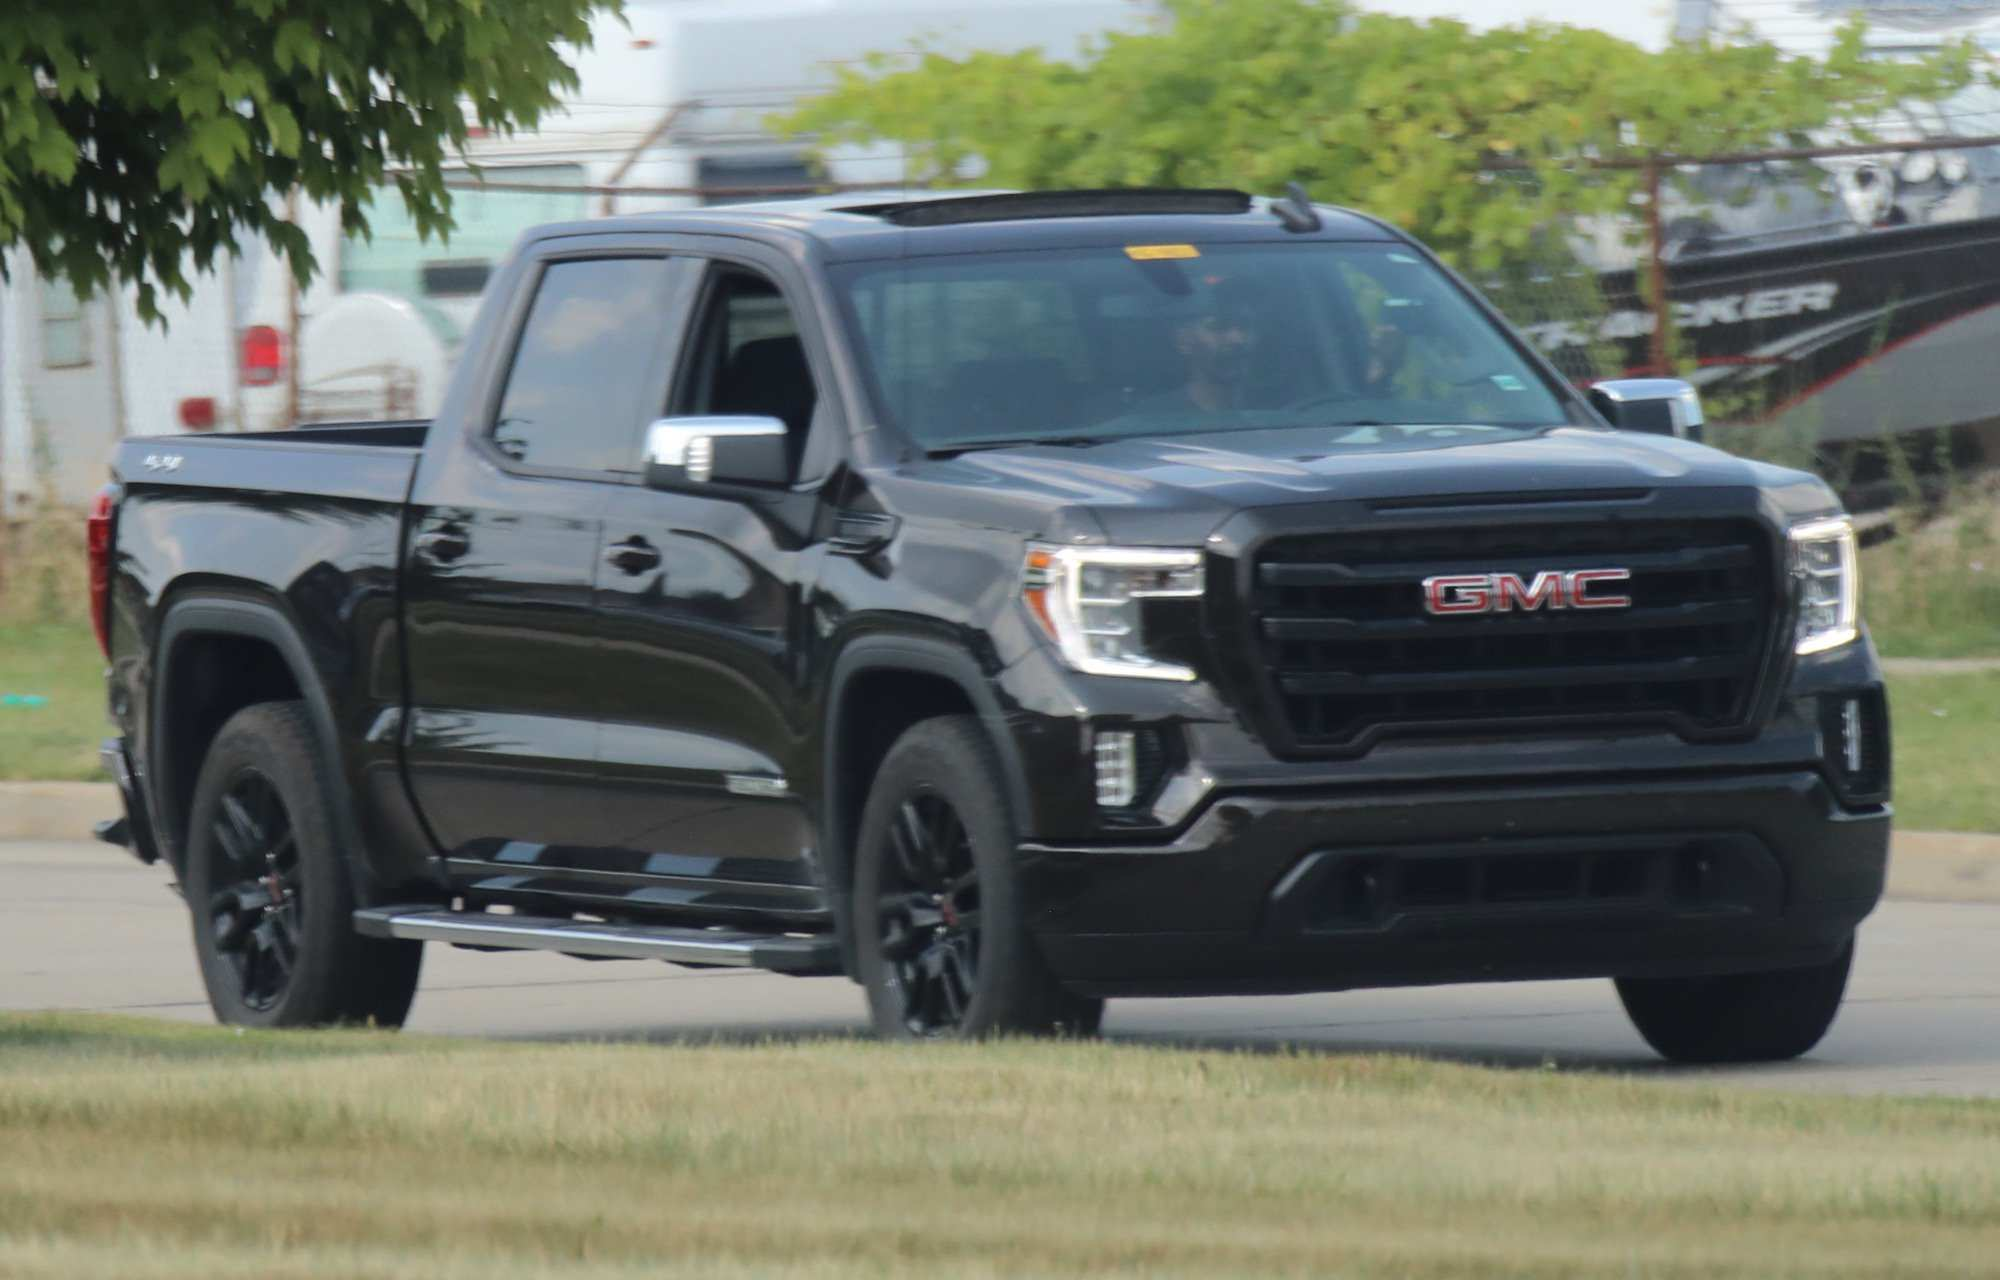 29 All New 2019 Gmc Elevation Edition Speed Test by 2019 Gmc Elevation Edition